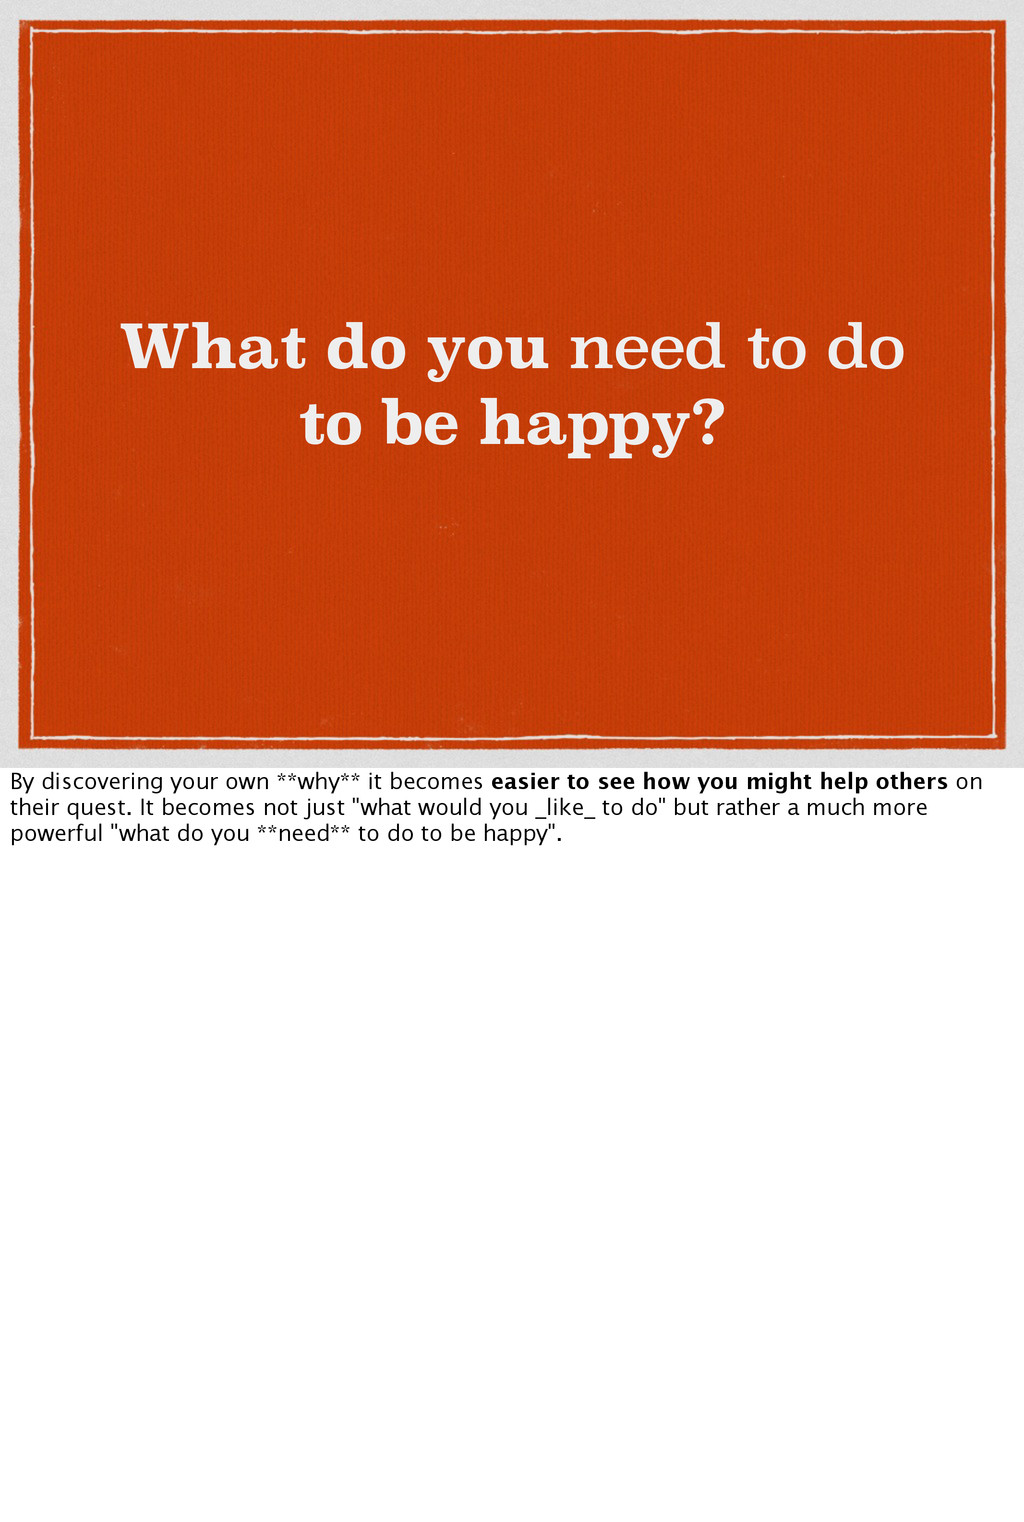 What do you need to do to be happy? By discover...